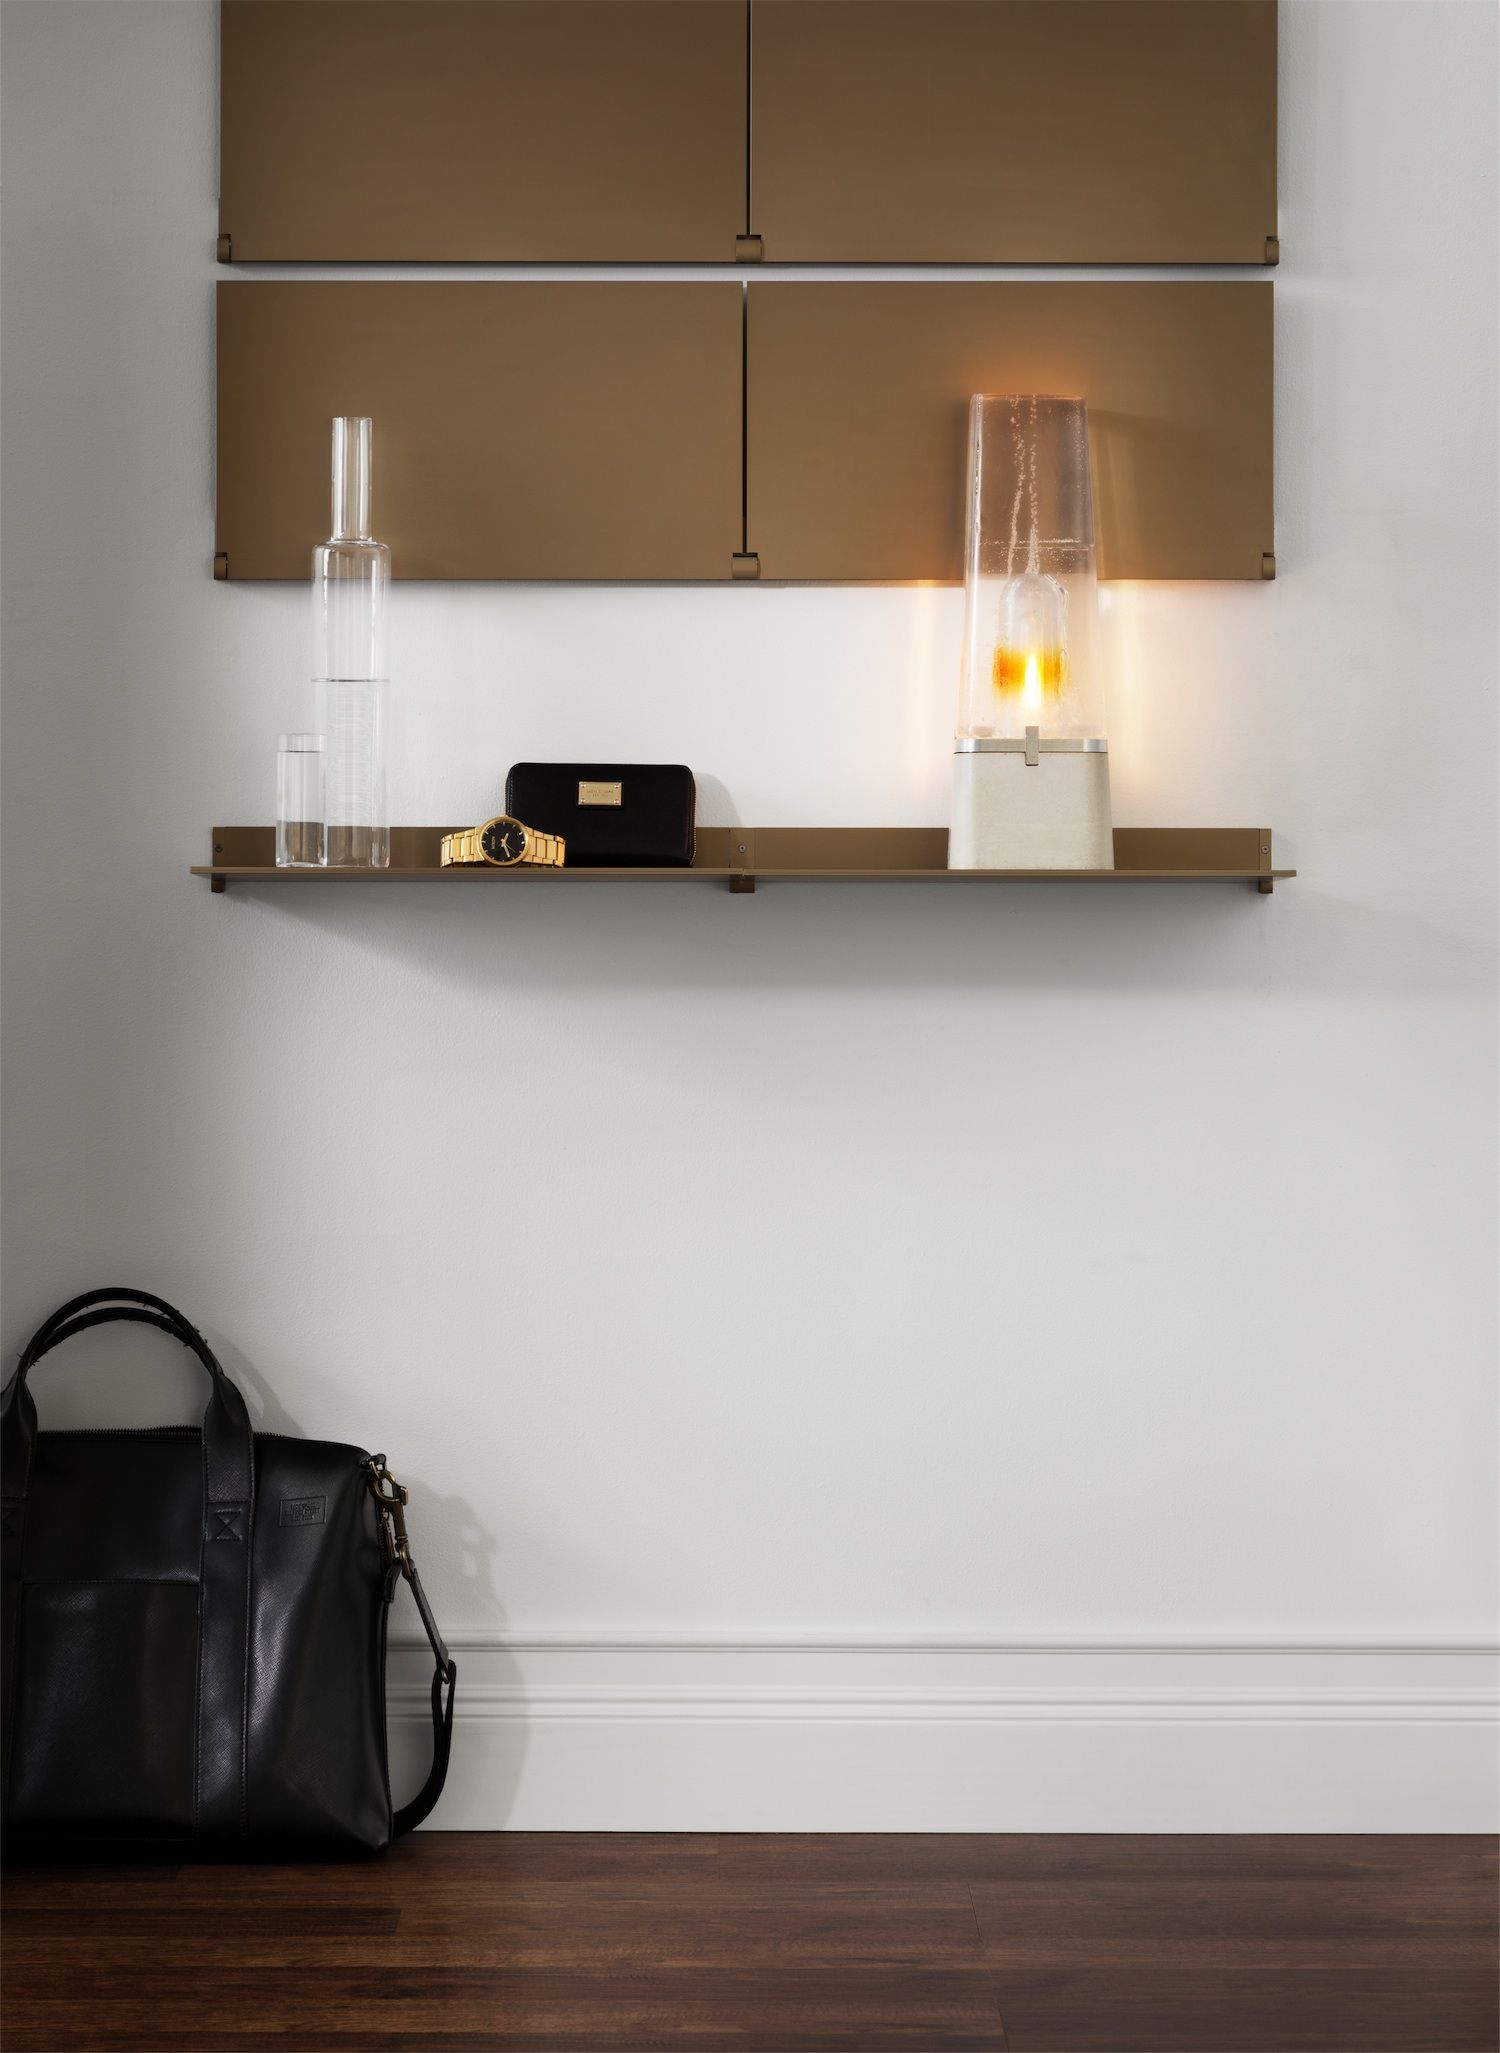 Hanging bookshelf design ideas that will revamp your home pennyroach - Riveli Shelving Champaign Gold Anodized Aluminum Shelf Featuring Individually Pivoting Shelves